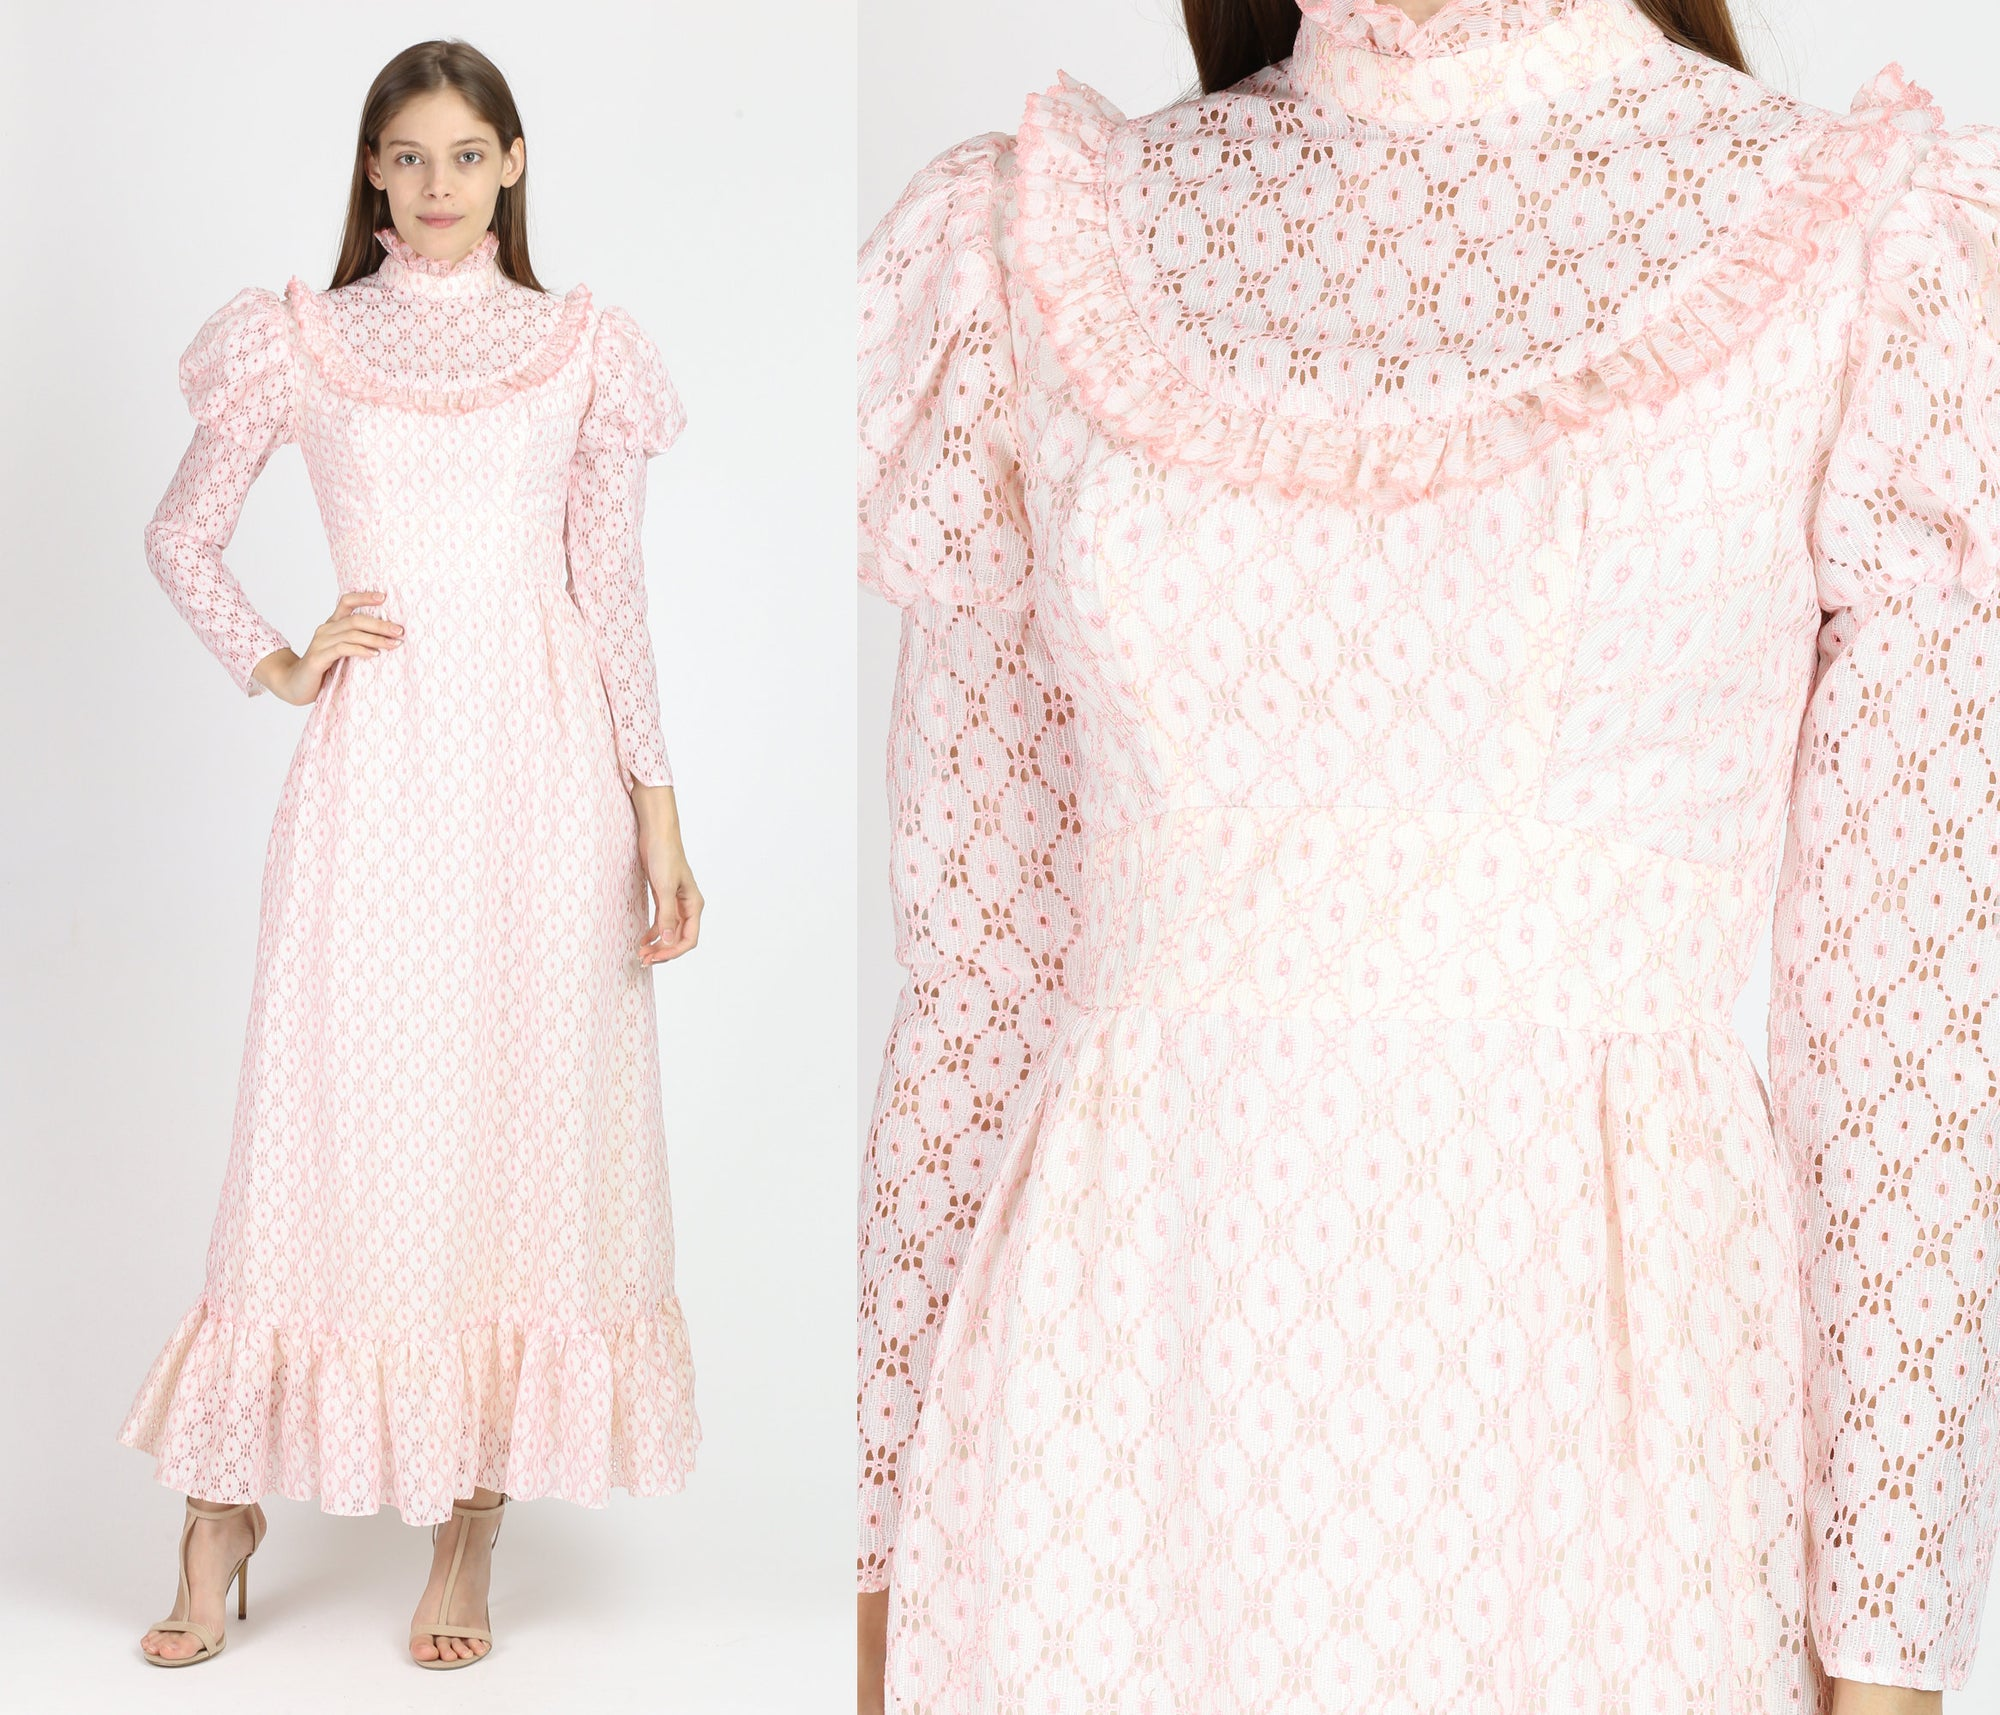 60s Pink Lace Juliet Sleeve Maxi Dress - Extra Small